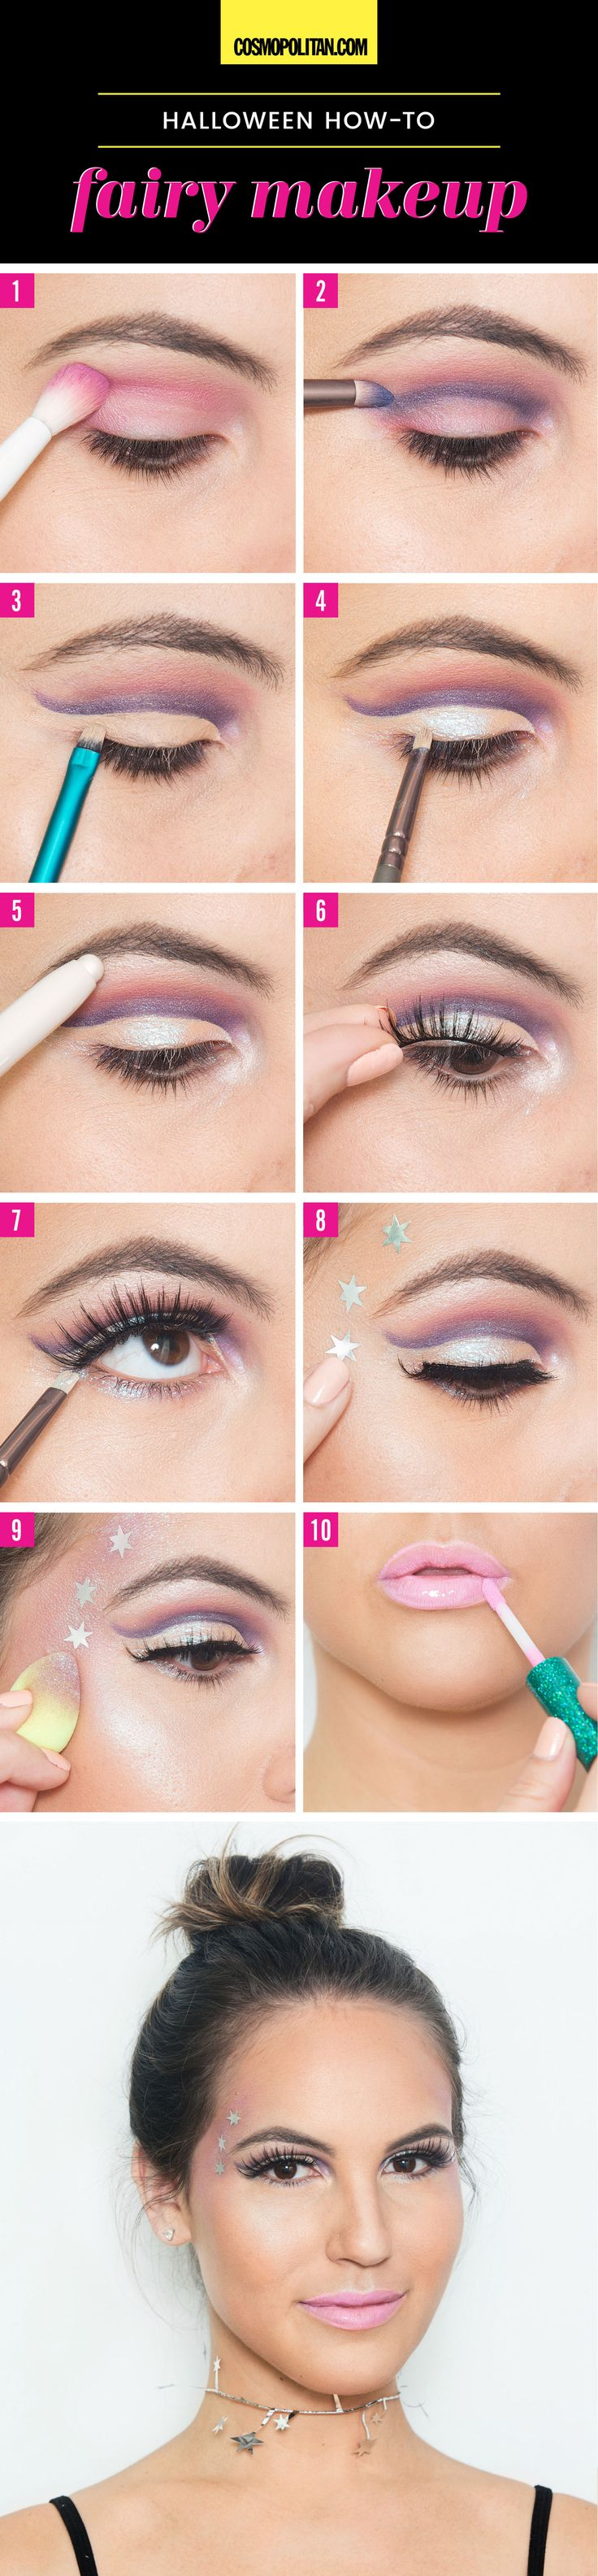 10 Halloween Looks You Can Create With Makeup You Already Have - Cosmopolitan.com